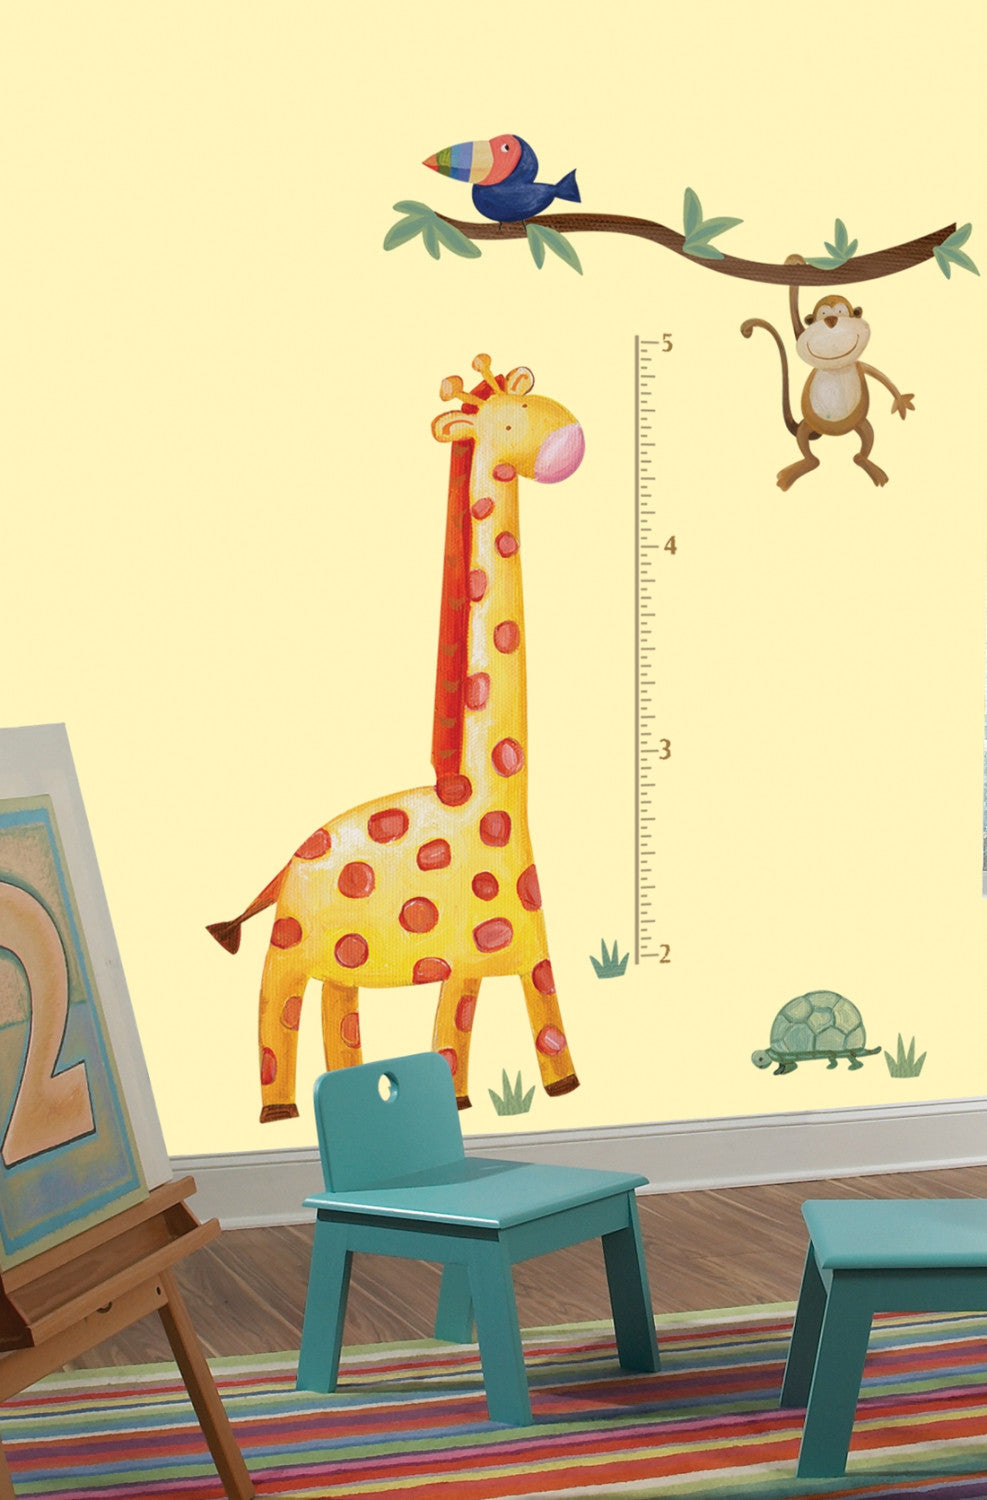 Jungle adventure giraffe peel stick growth chart walldecals jungle adventure giraffe peel stick growth chart image nvjuhfo Image collections